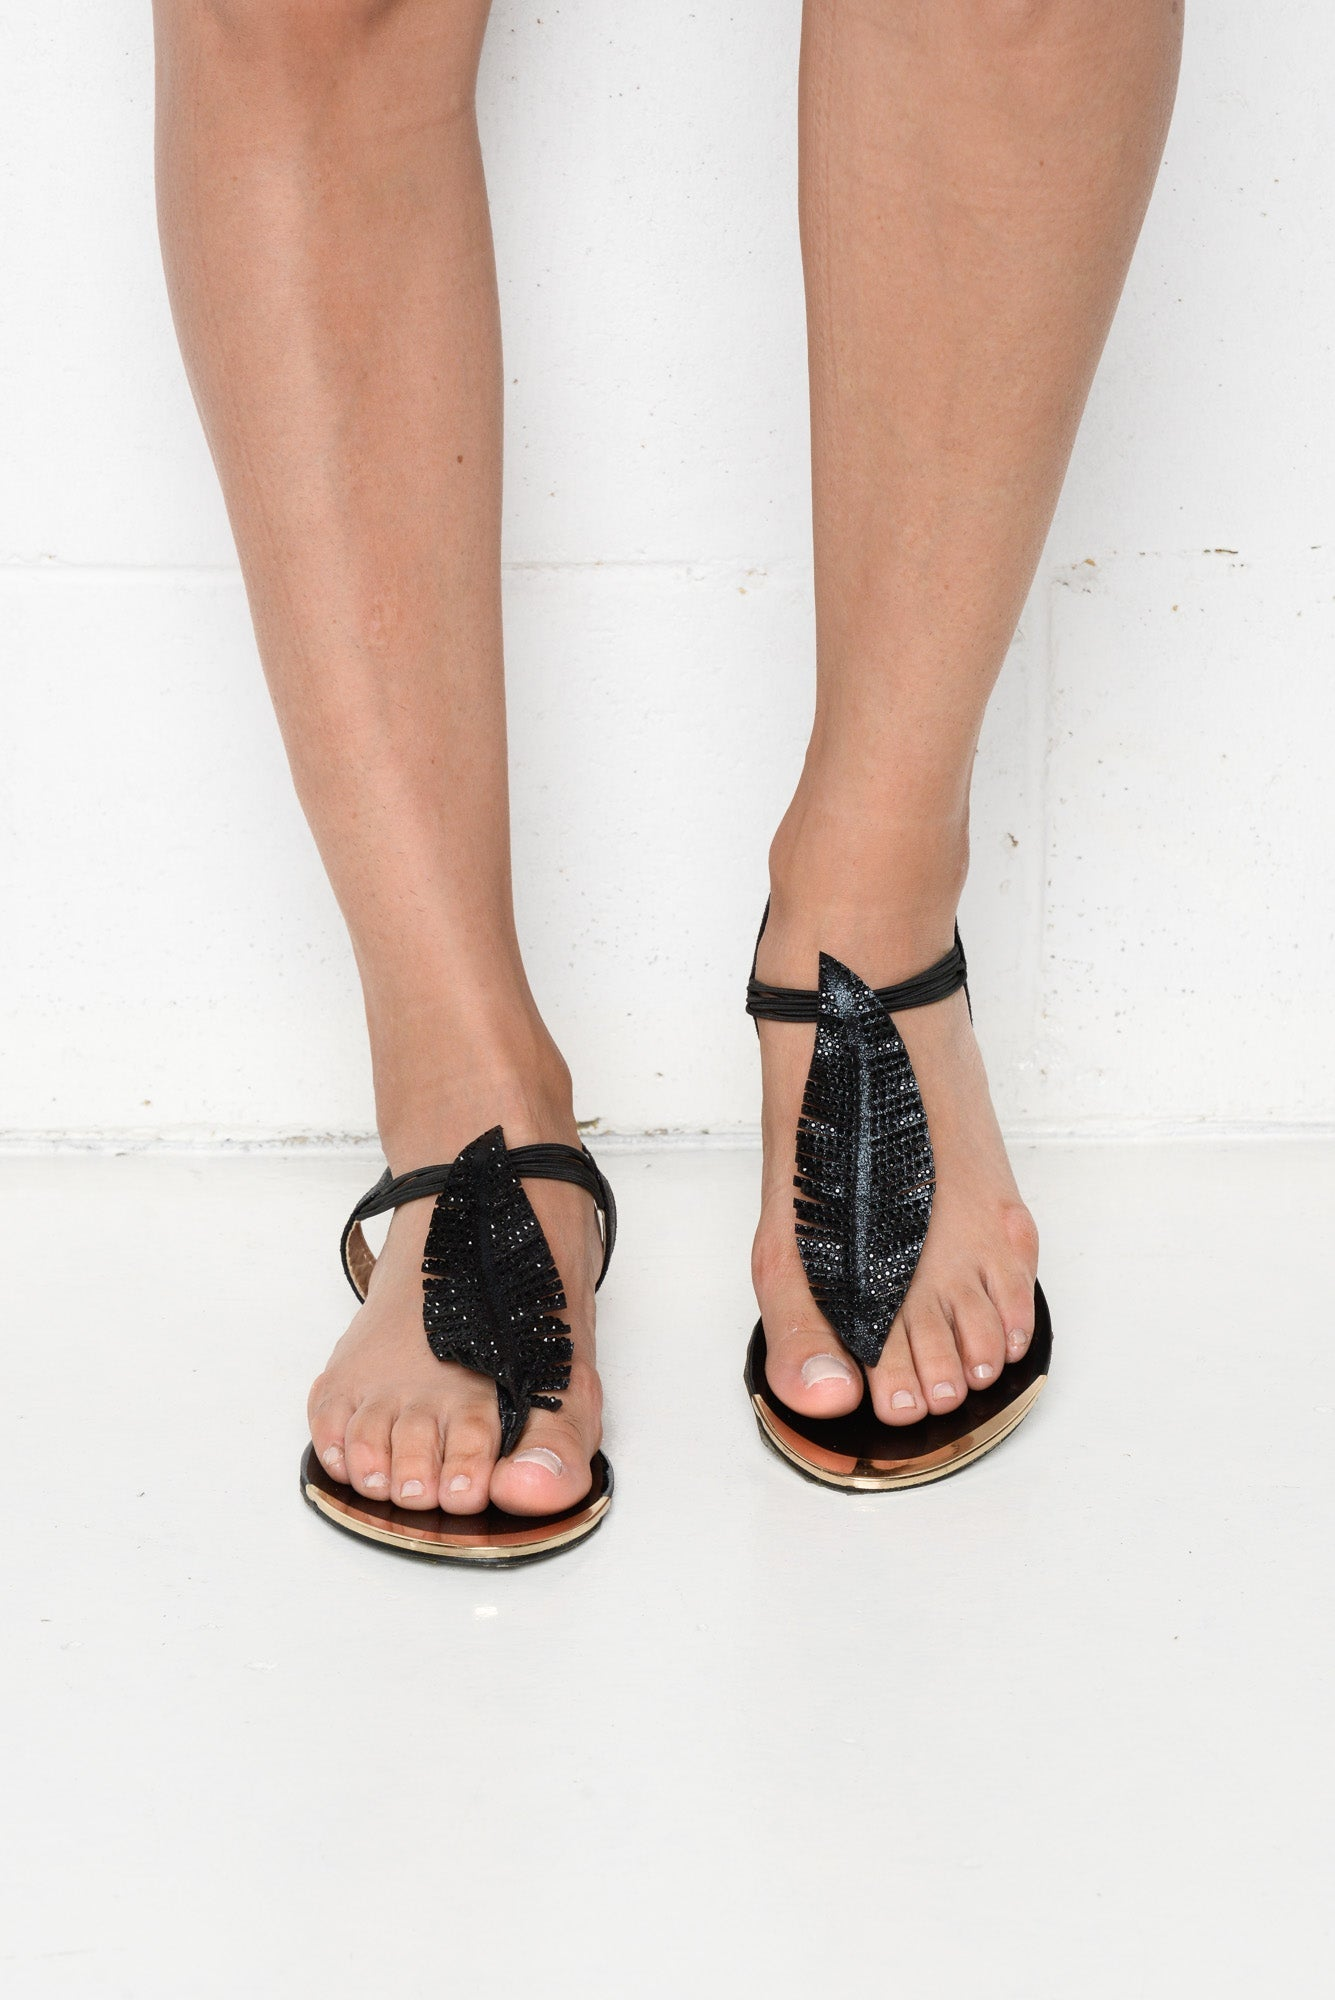 Black Autumn Leaf Sandal - Blue Bungalow